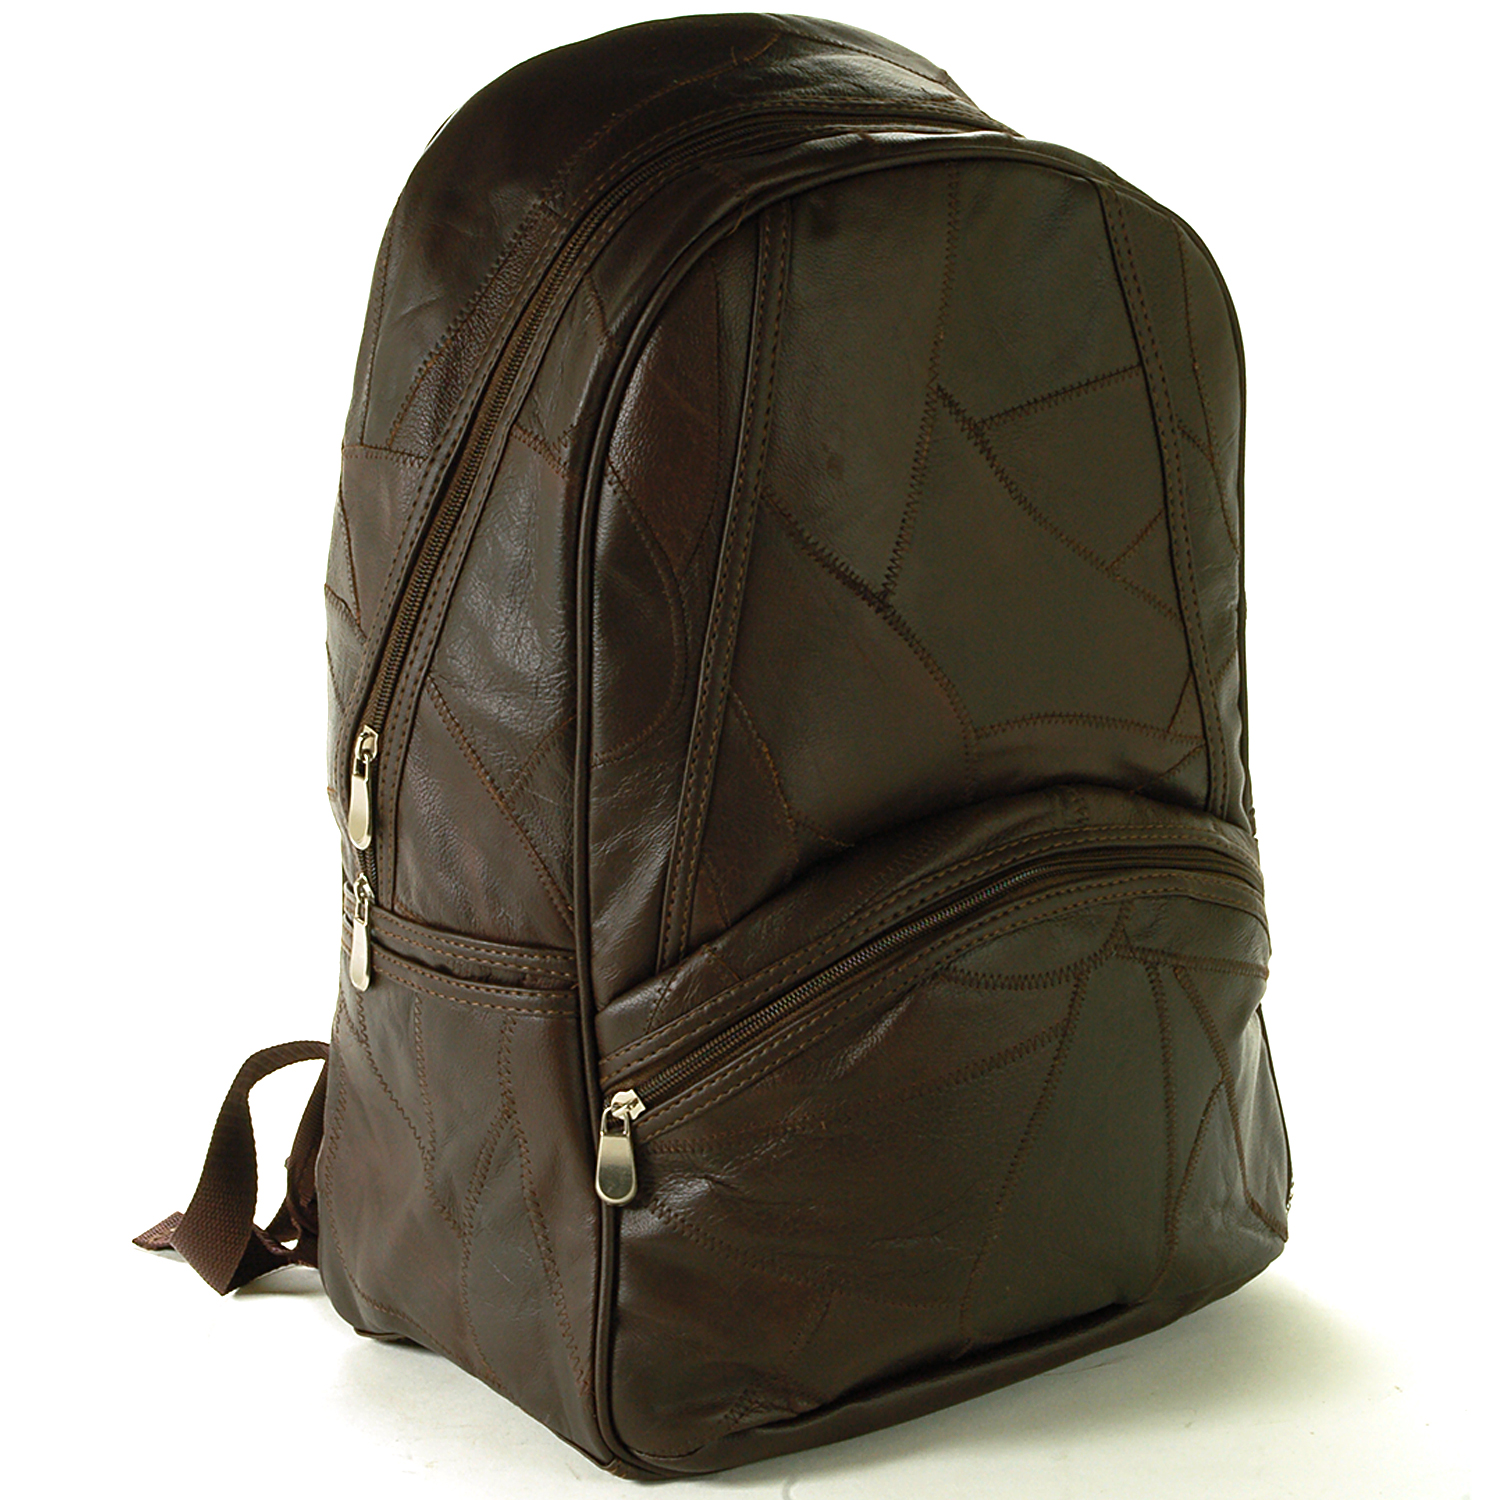 "Laptop Backpack Patchwork Leather 15"" Computer Case Travel Organizer Book Bag"